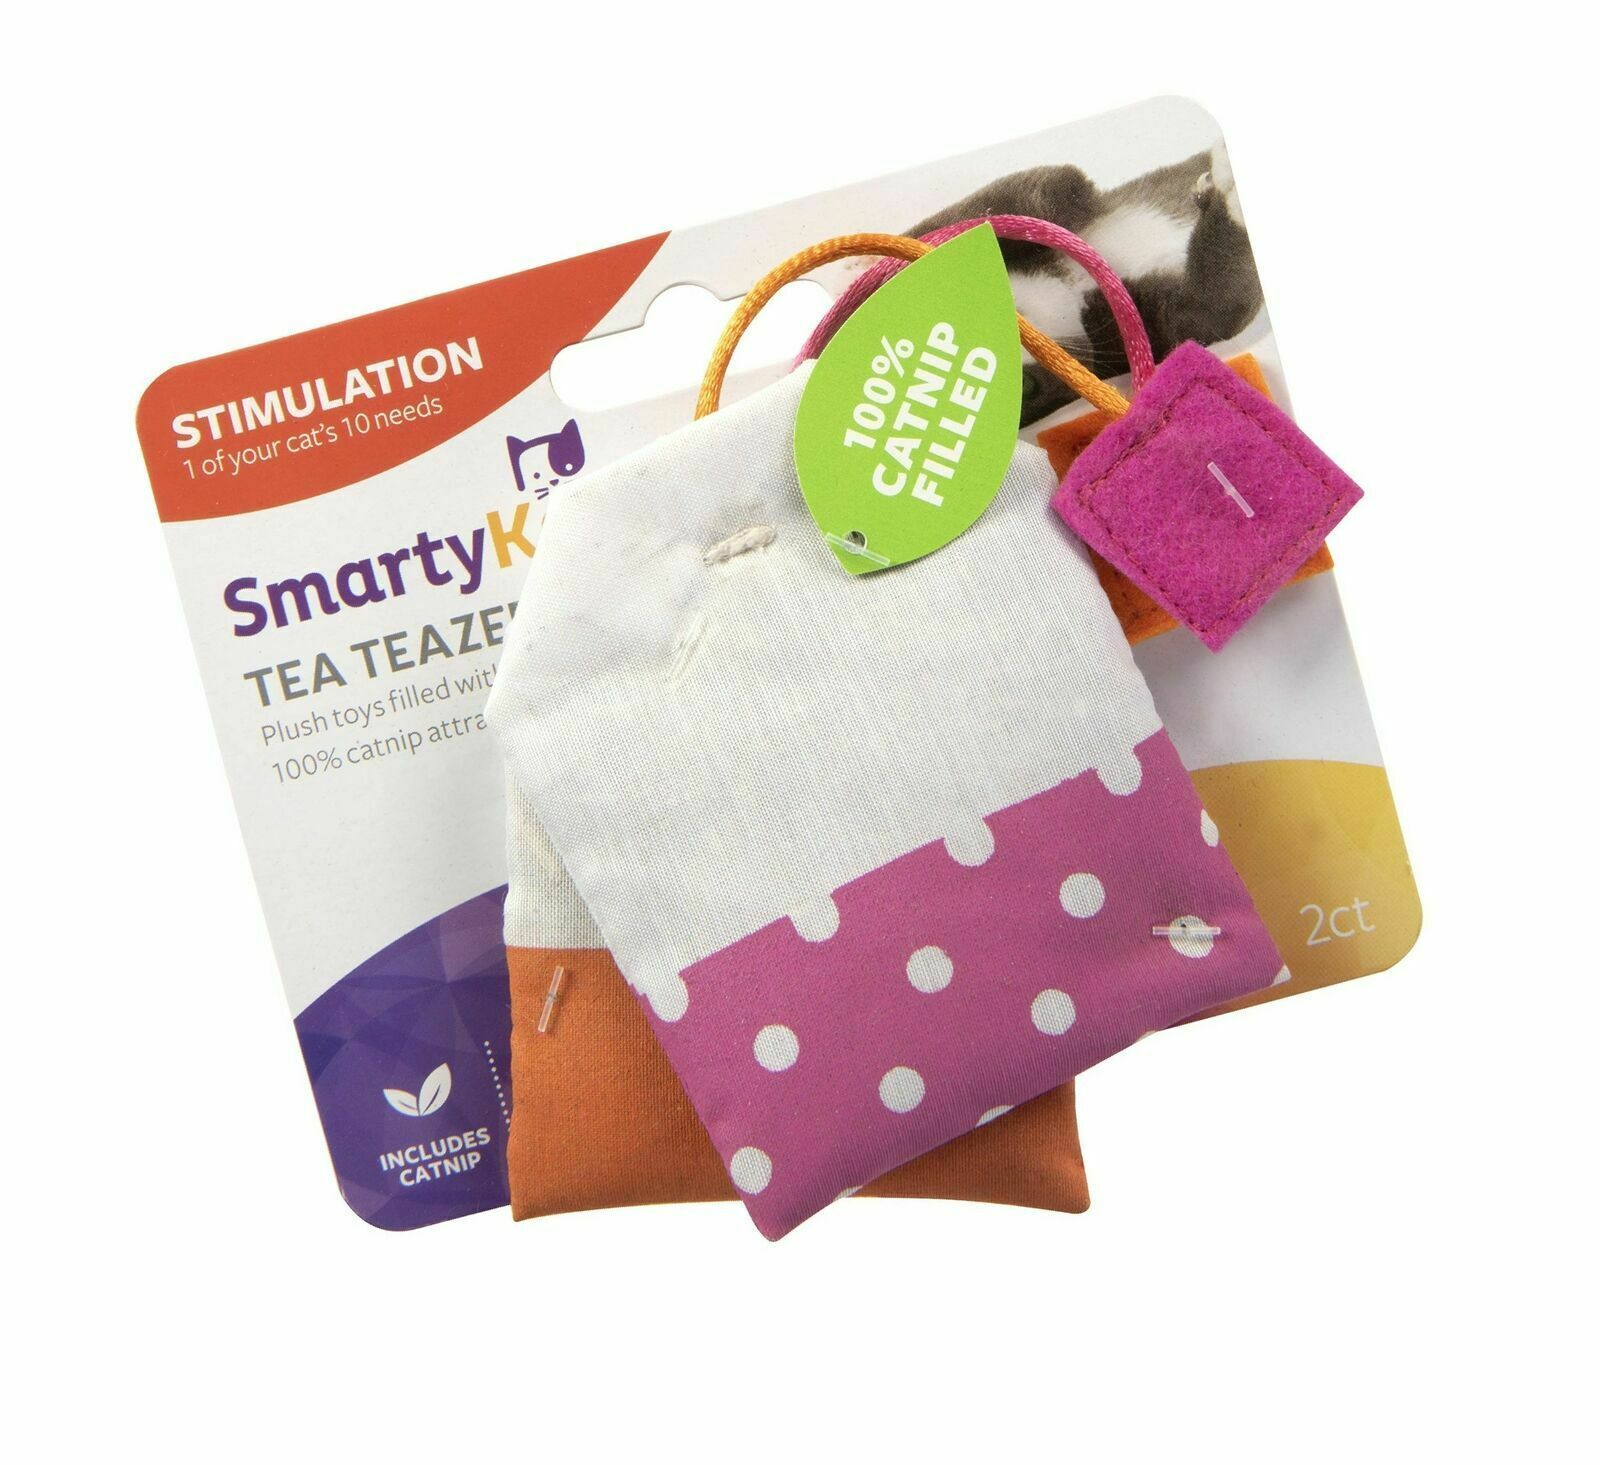 SmartyKat, Tea Teazers, Soft Plush Tea Bags, Cat Toys, Orange & Pink -set of 2